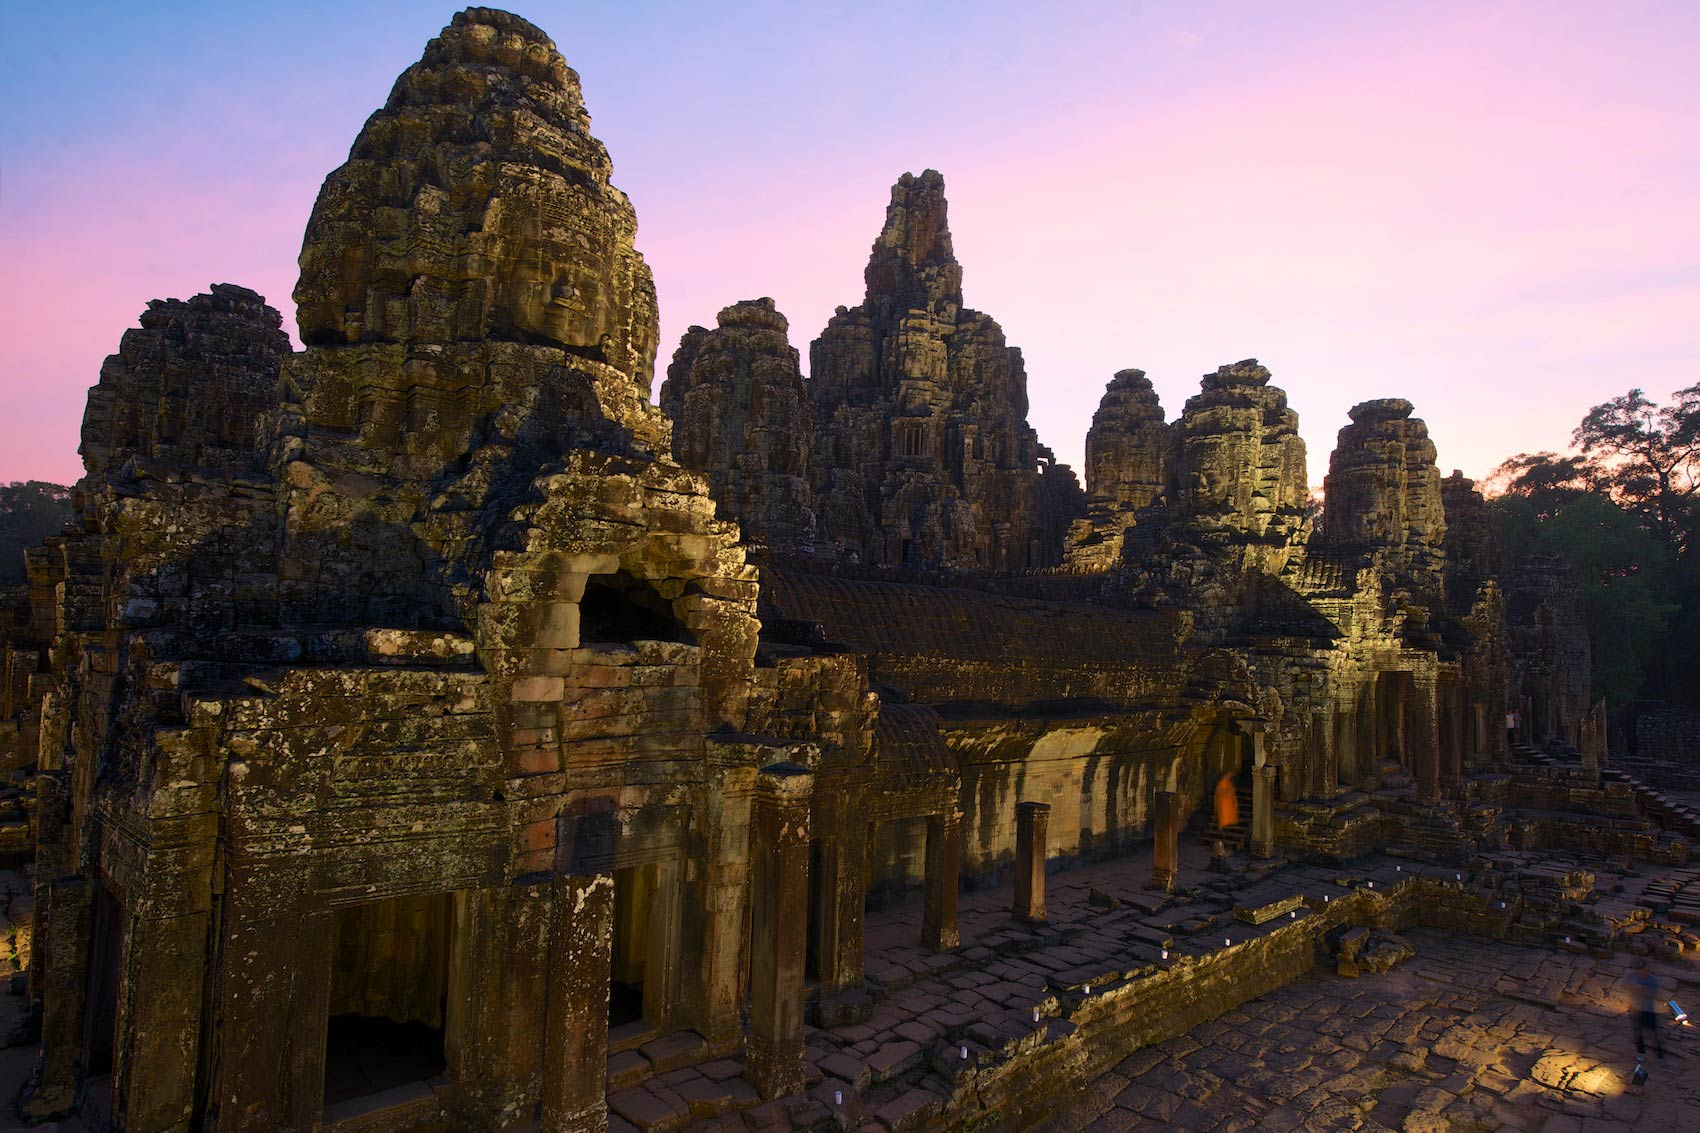 Angkor-drone-project-010.jpg